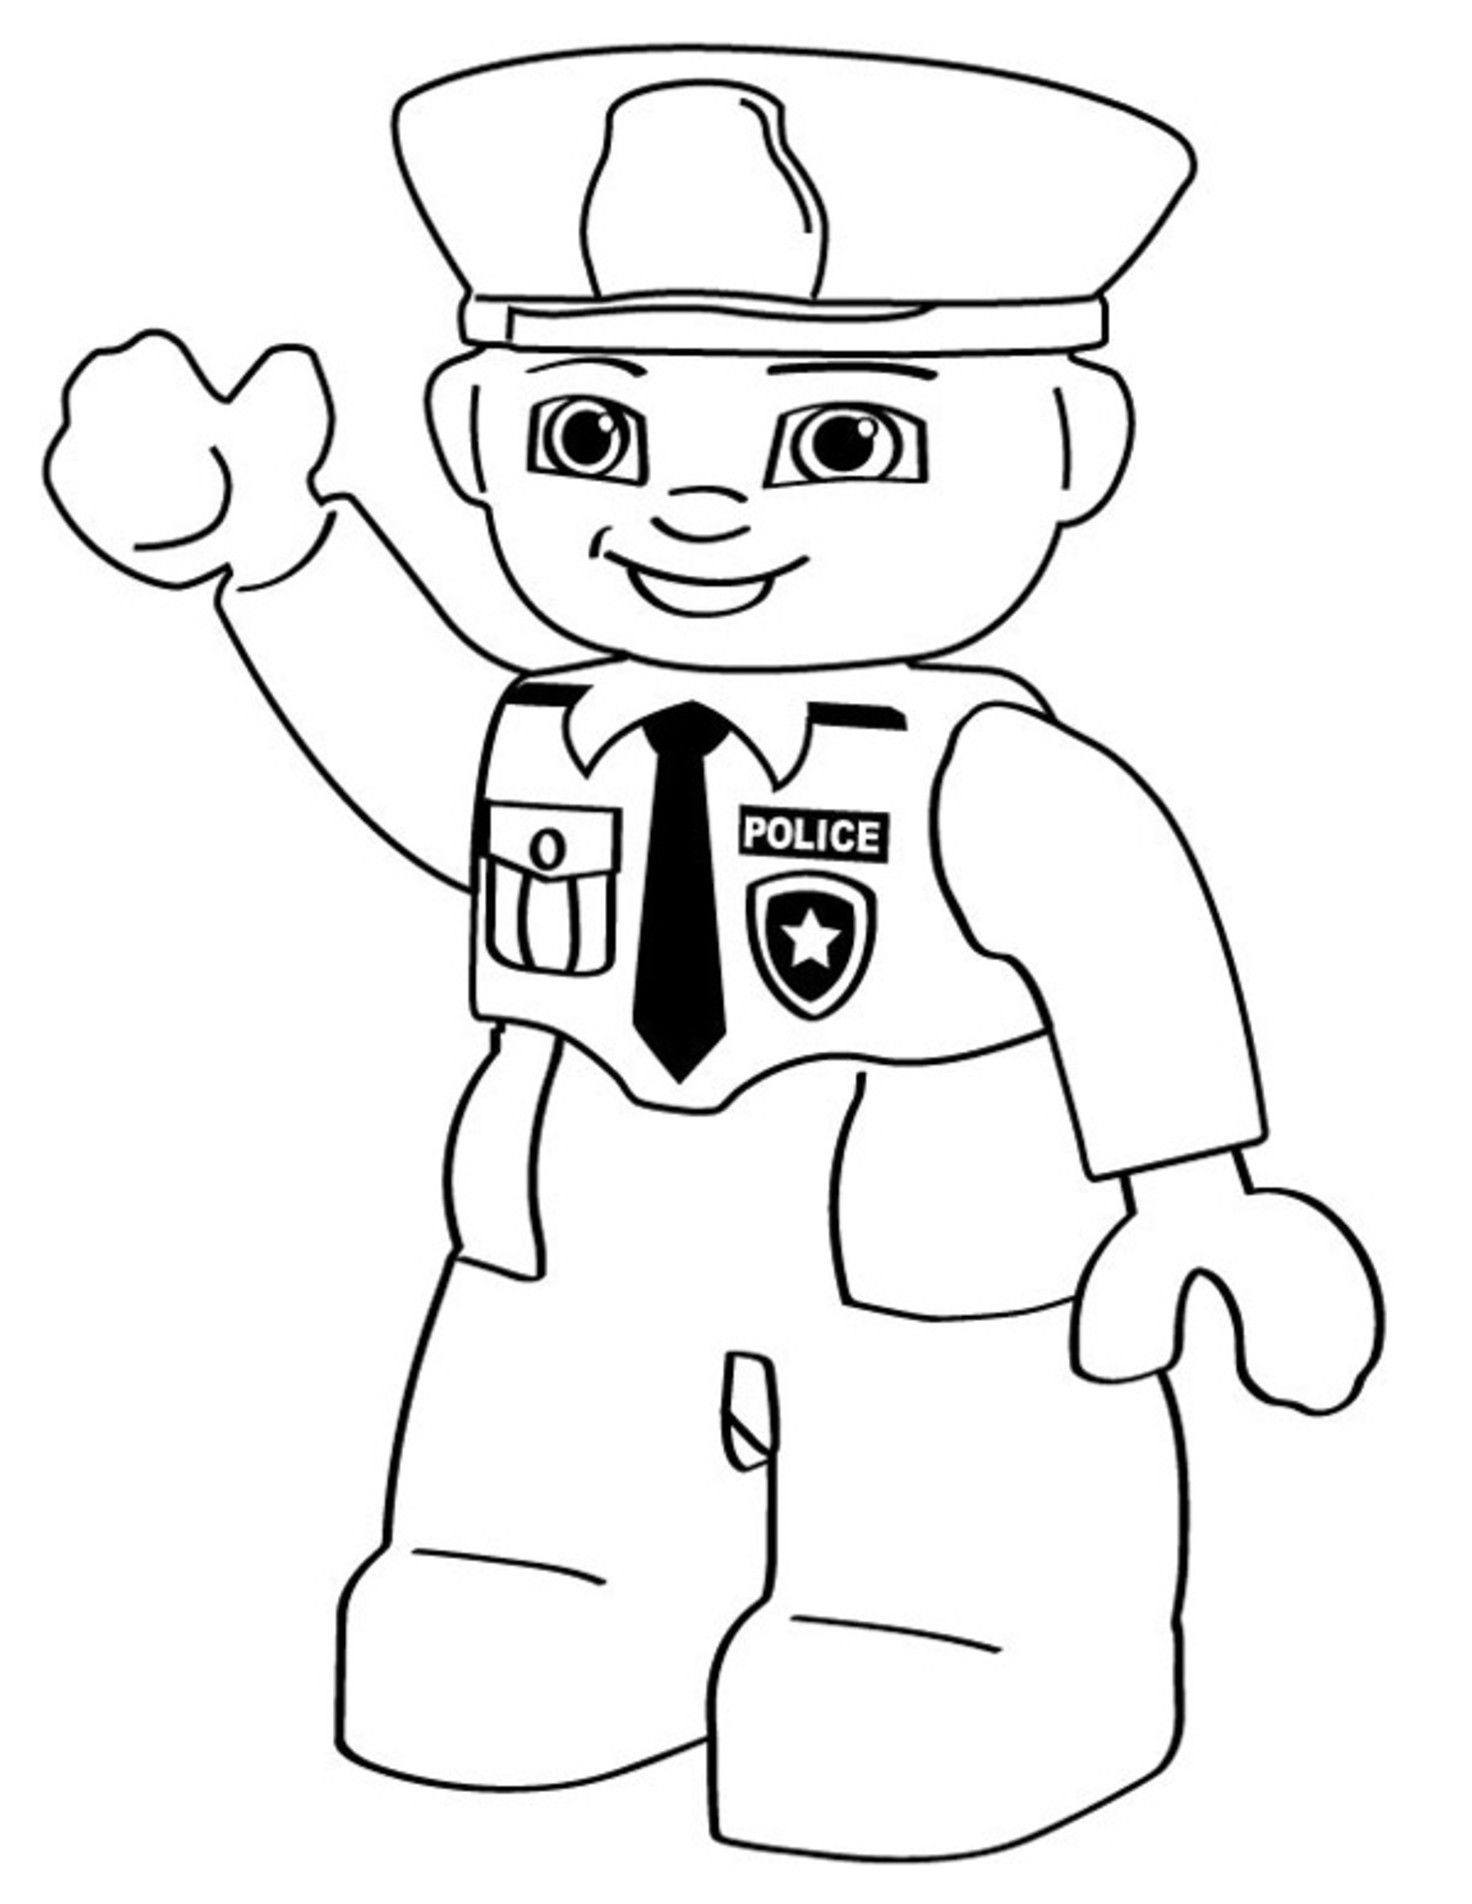 Thank You Police Officer Coloring Page Printables Http Www Wallpaperartdesignhd Us Thank You Police Lego Coloring Pages Cartoon Coloring Pages Lego Coloring